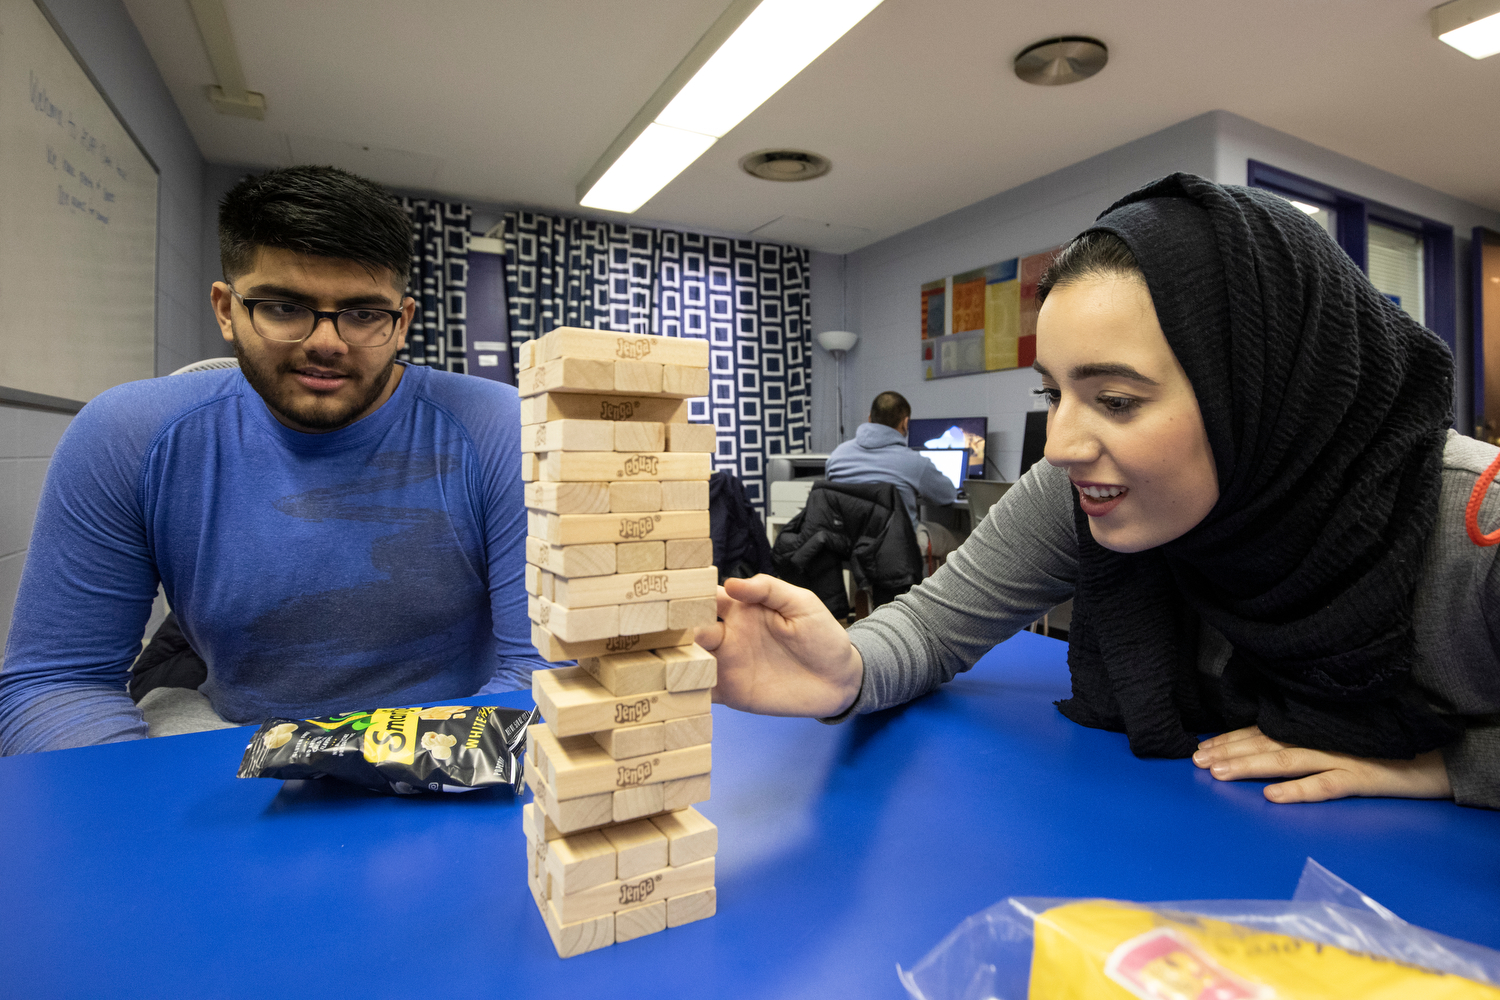 Tamara Jumah (LAS '22), right, plays Jenga with Zakee Jabbar (LAS '20) during AHS Academic Support and Achievement Program's open house in the Physical Education Building.